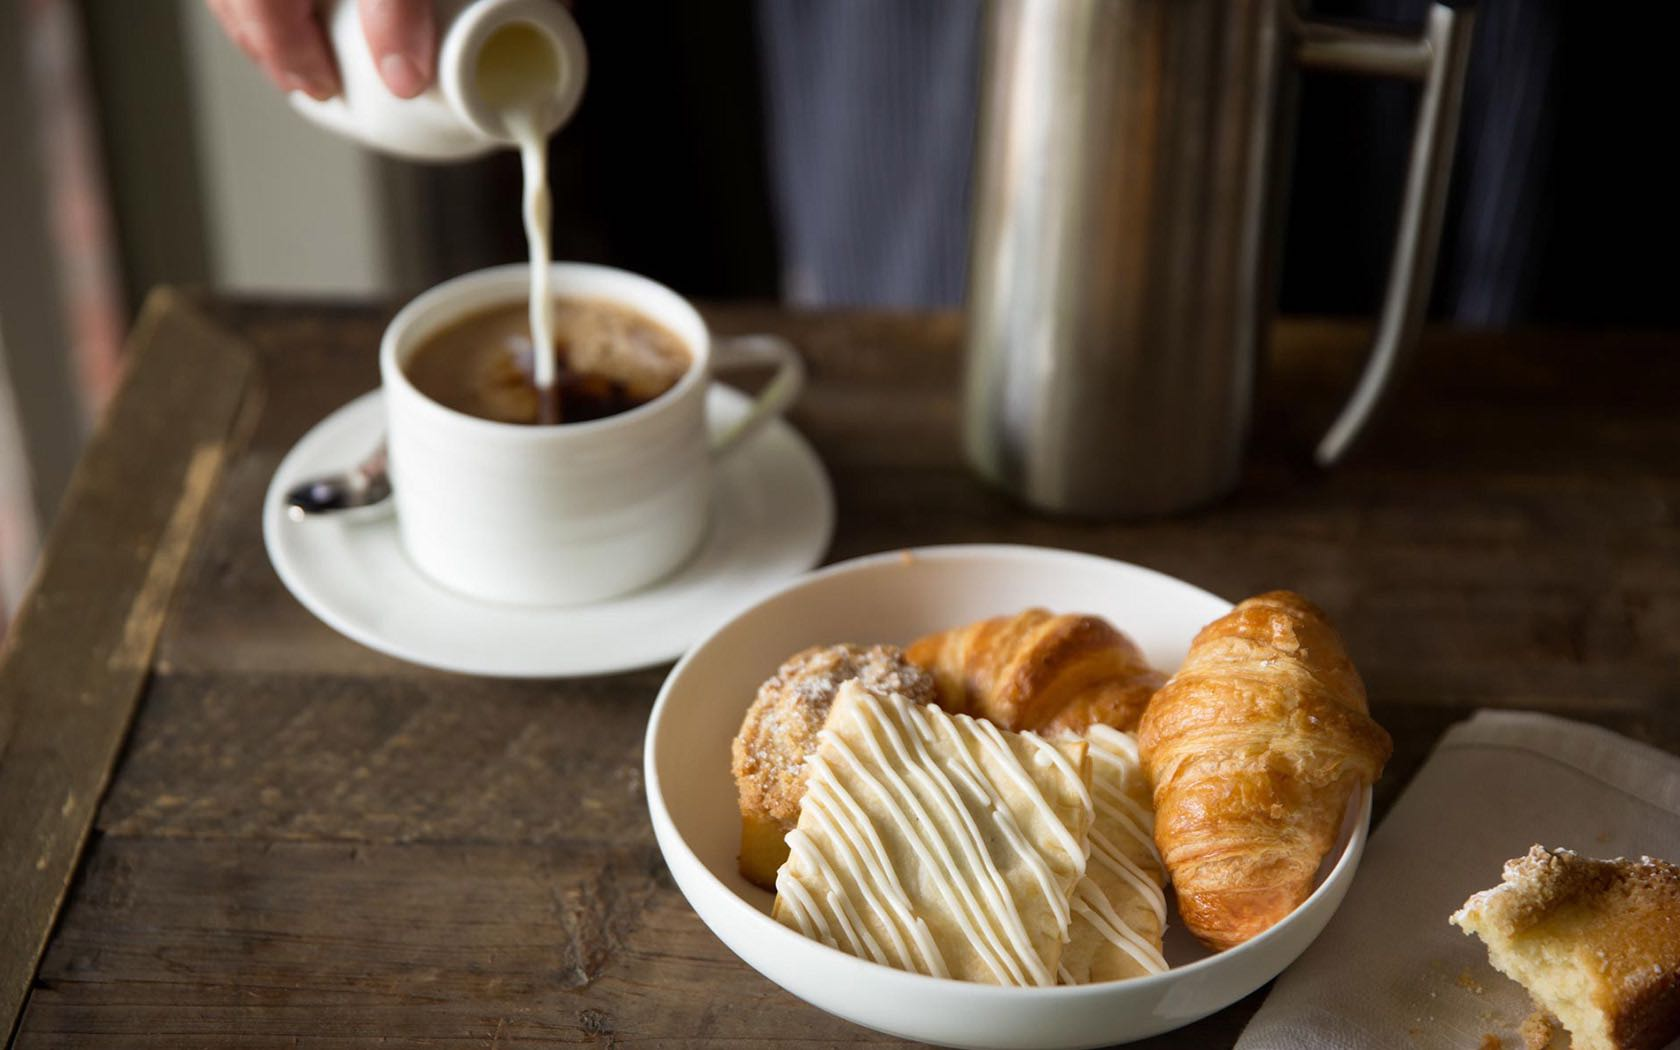 Coffee being poured into mug next to plate of pastries